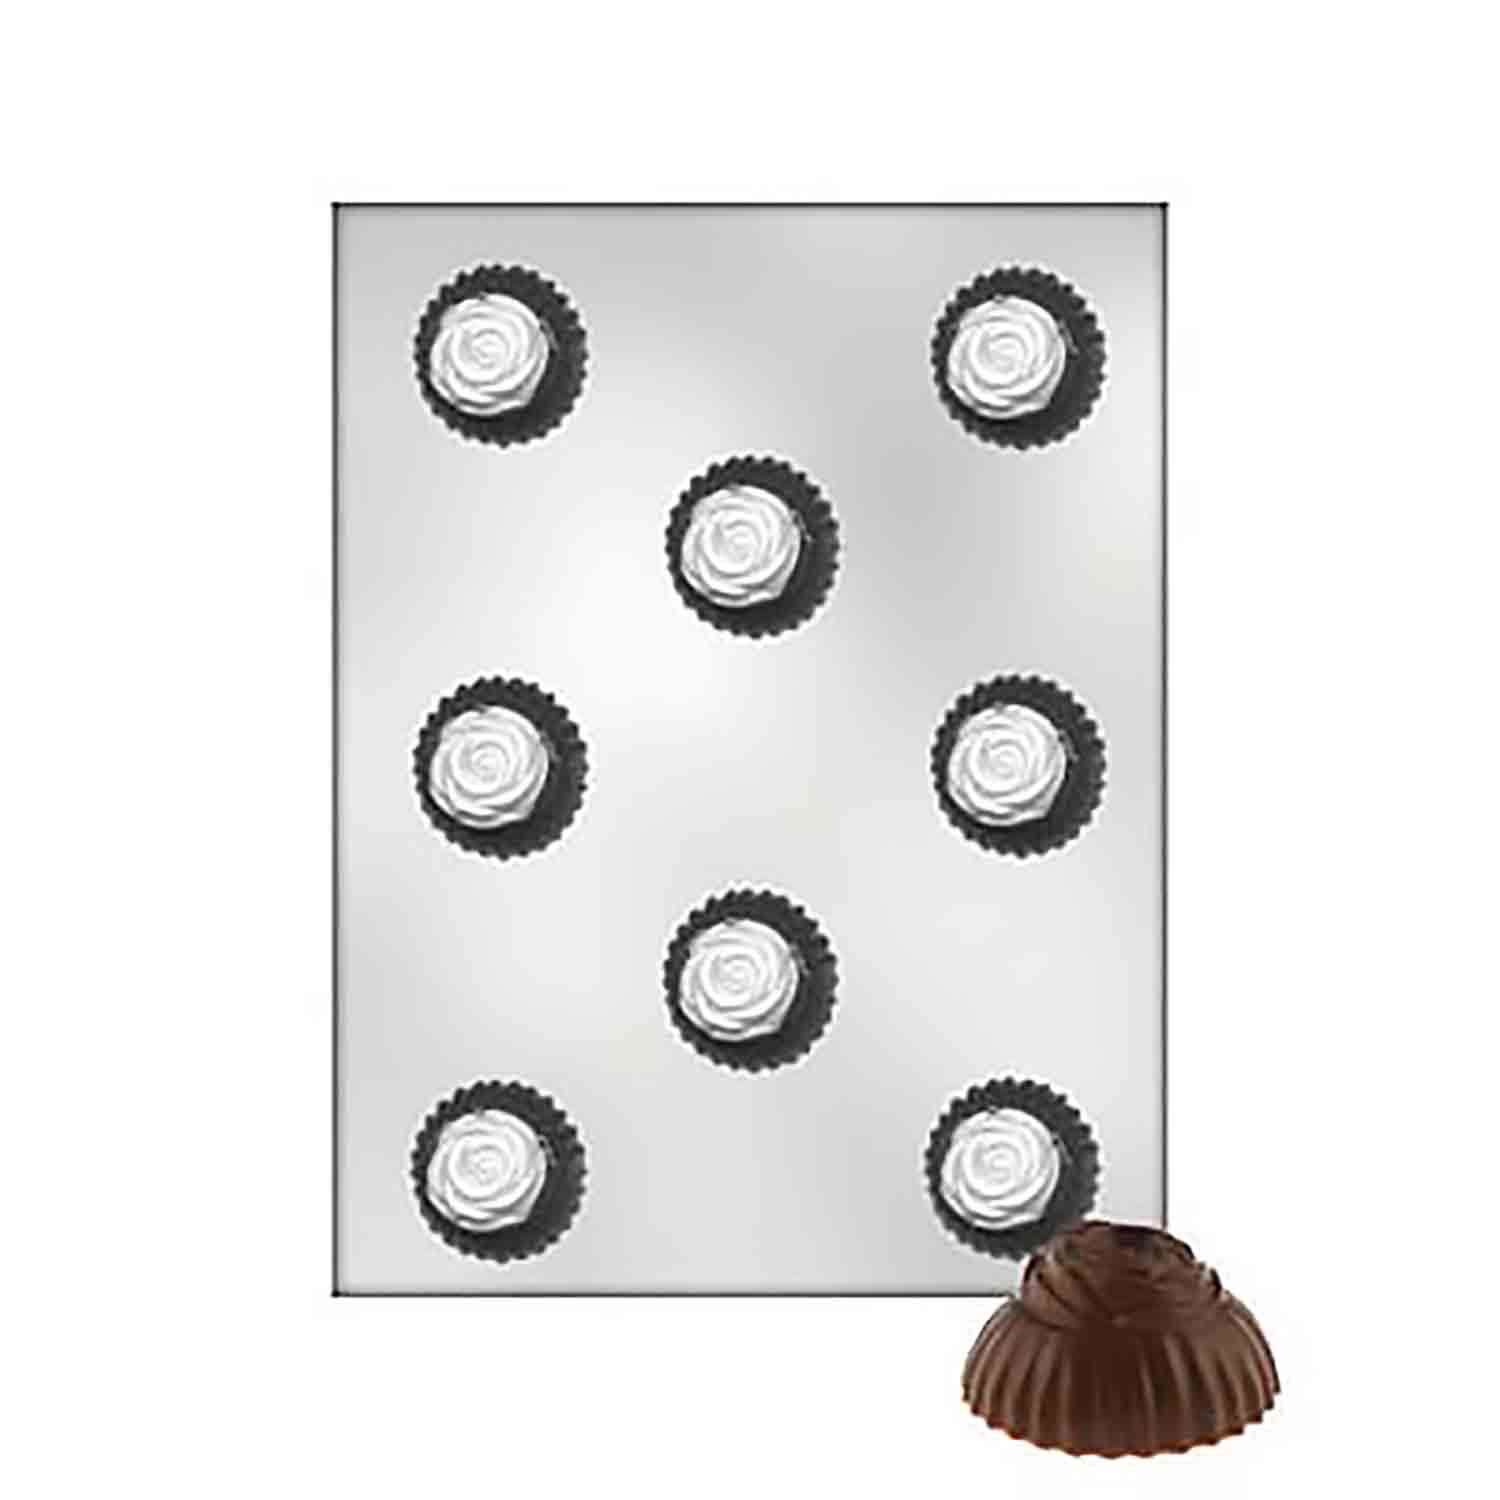 Rose-Topped Truffle Chocolate Candy Mold